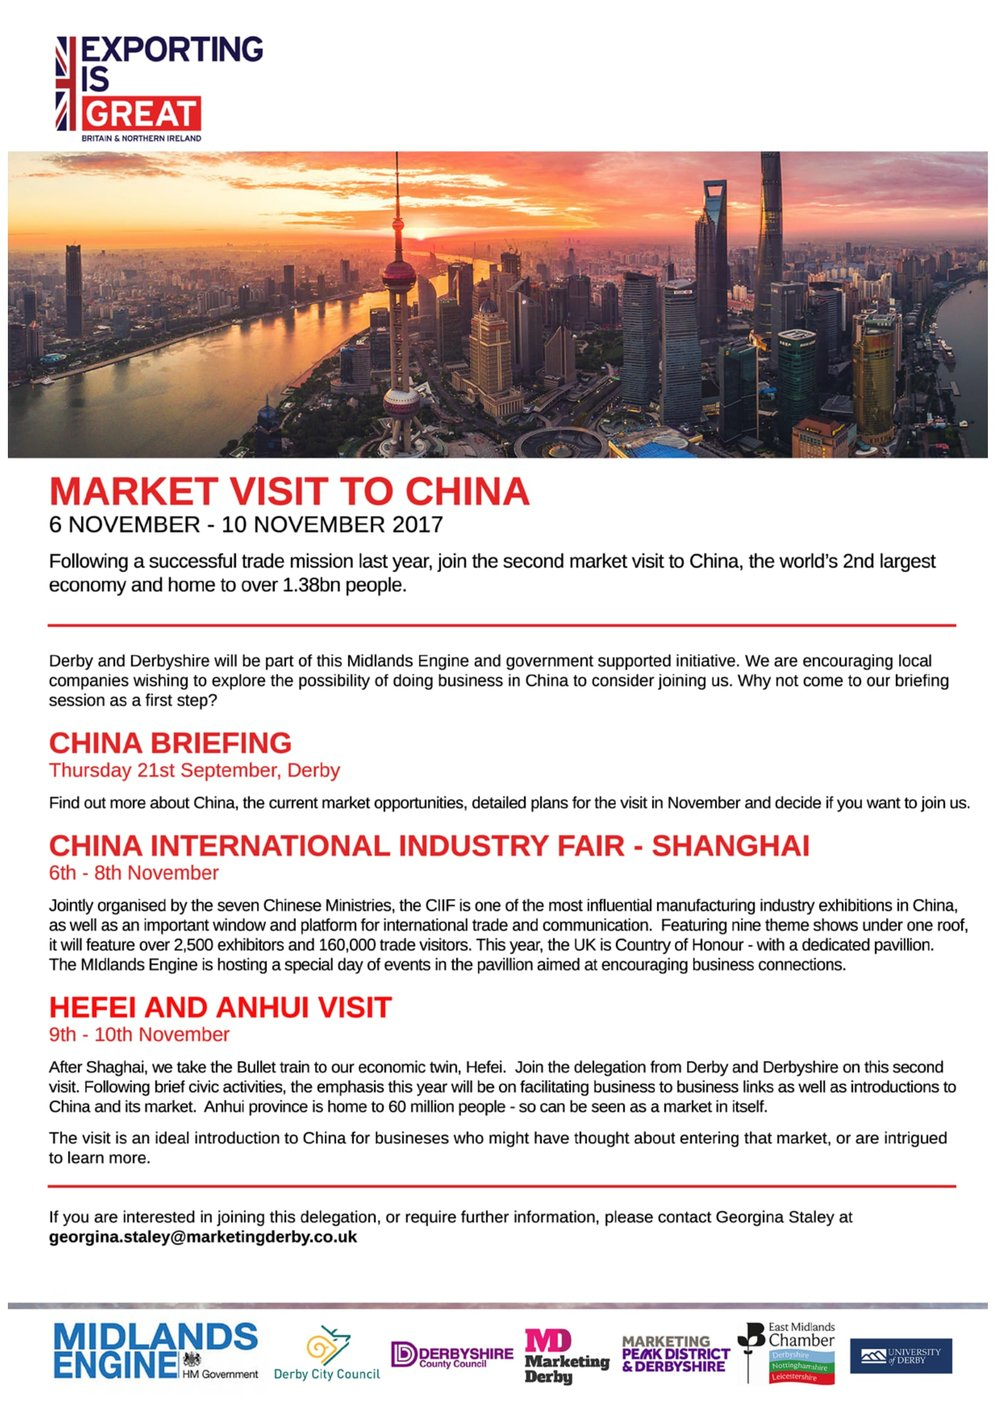 Chinese Midlands Engine Visit Invitation (1)-1.jpg